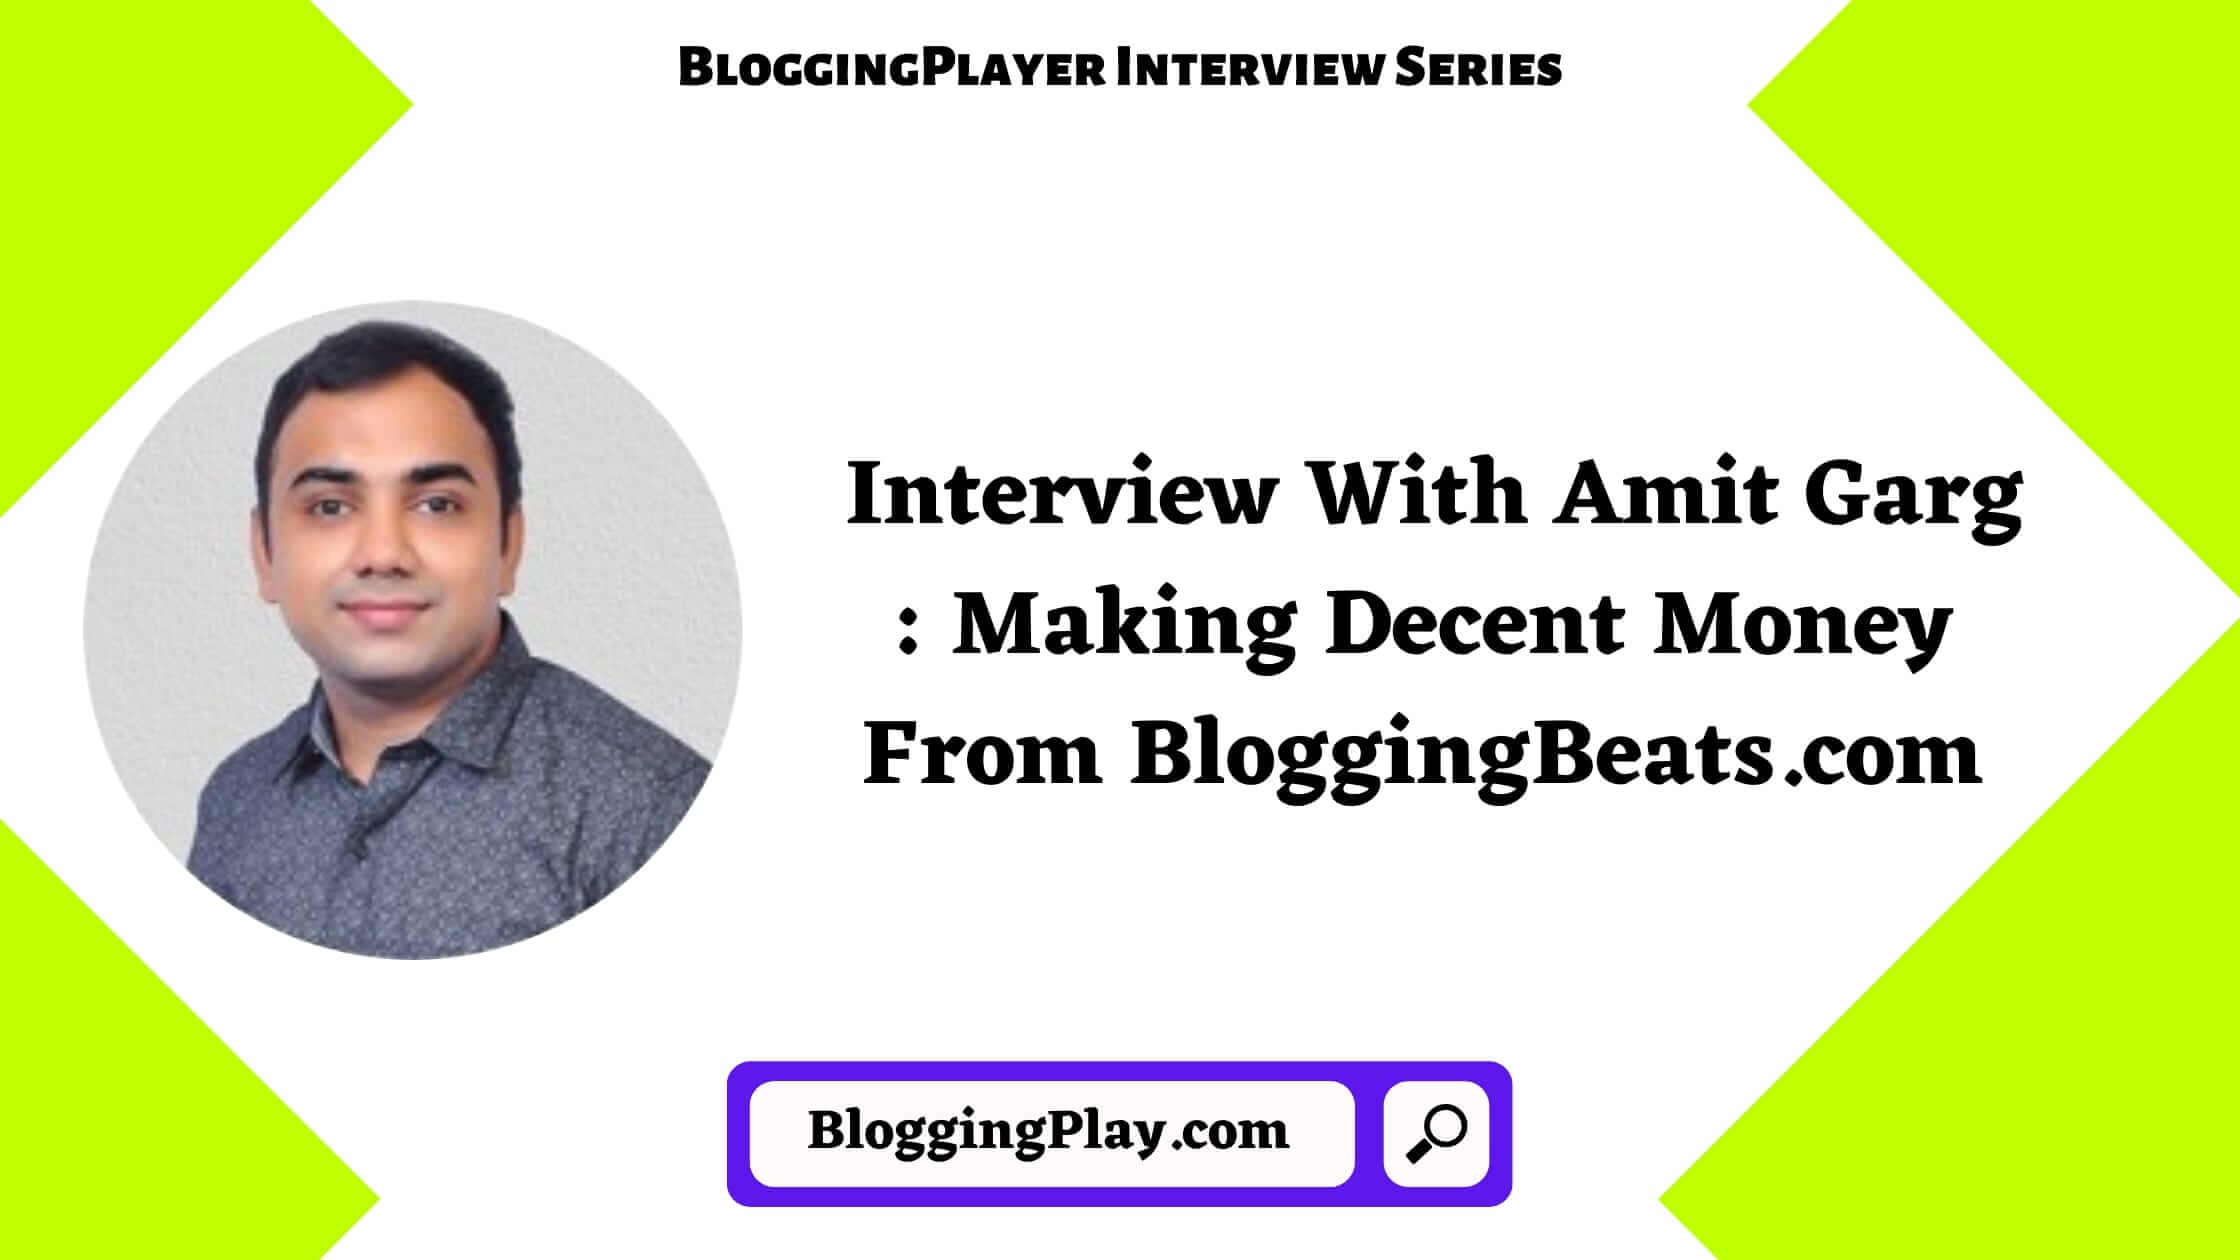 Interview With Amit Garg in English